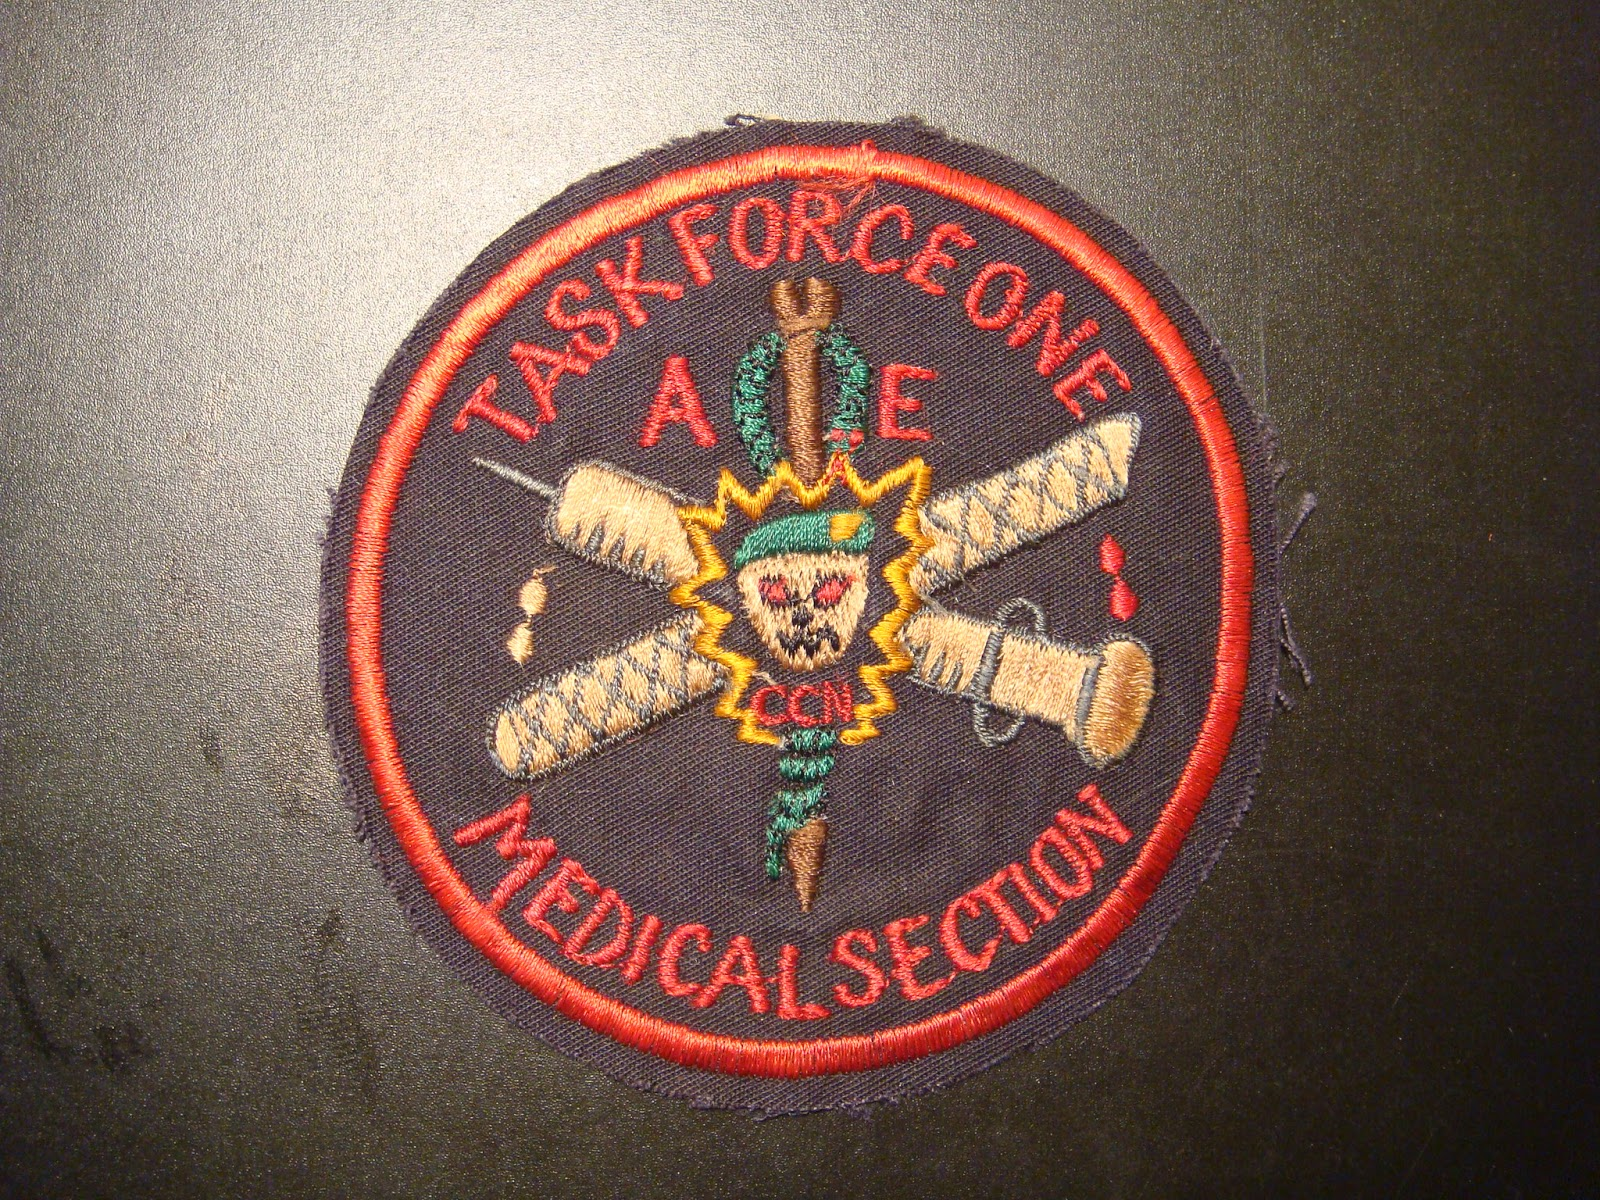 Bekleidung & Schutzausrüstung US Army 5th Special Forces Task Force 1 CCN COMMO TF1A Uniform patch Aufnäher